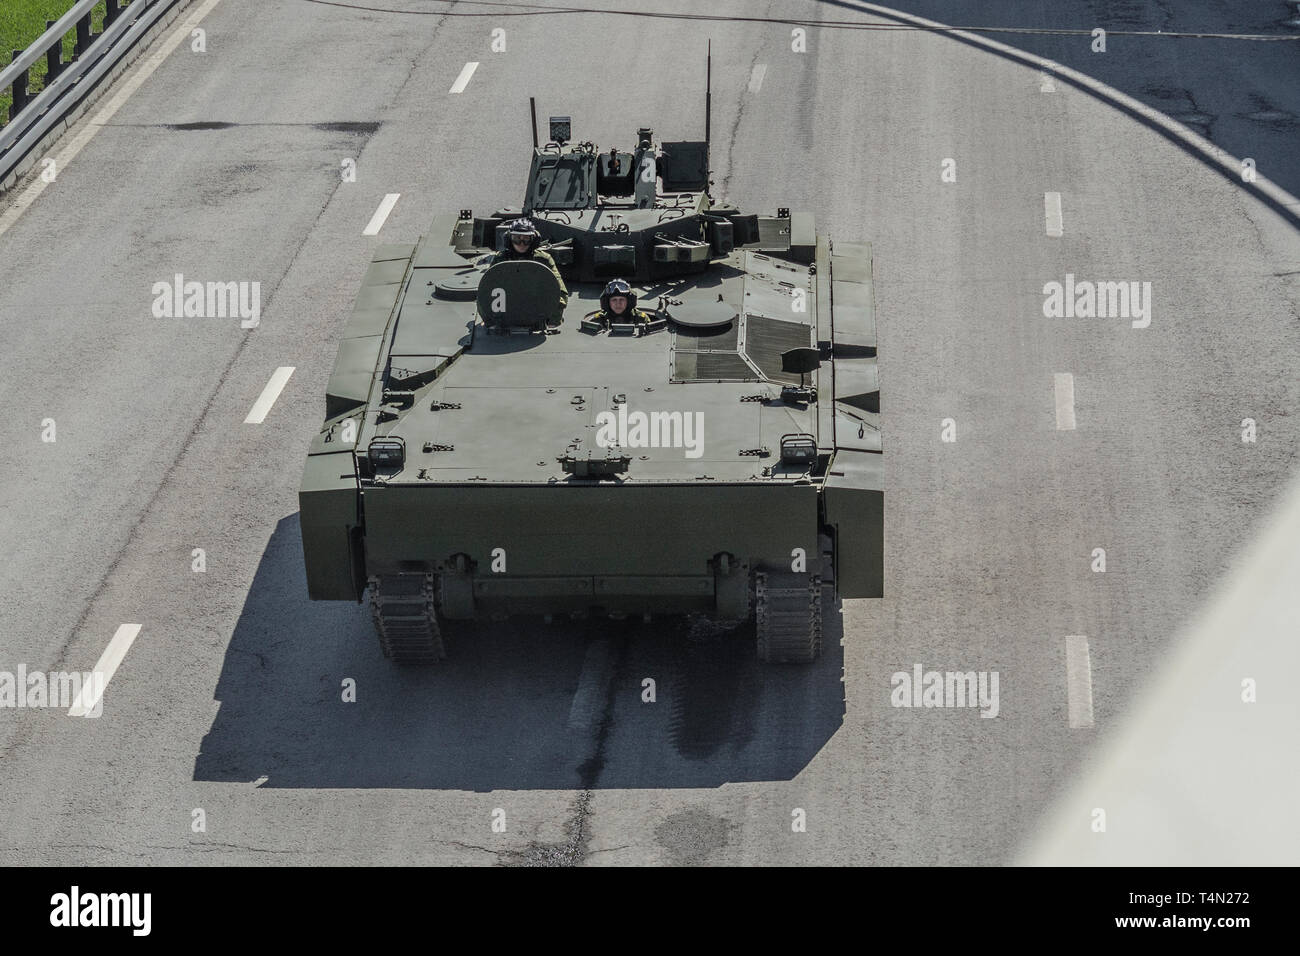 Moscow, May 7, 2015. The APC B-10 Kurganets-25 returns from the Red Square after the Victory Day Parade rehearsal, front view. - Stock Image